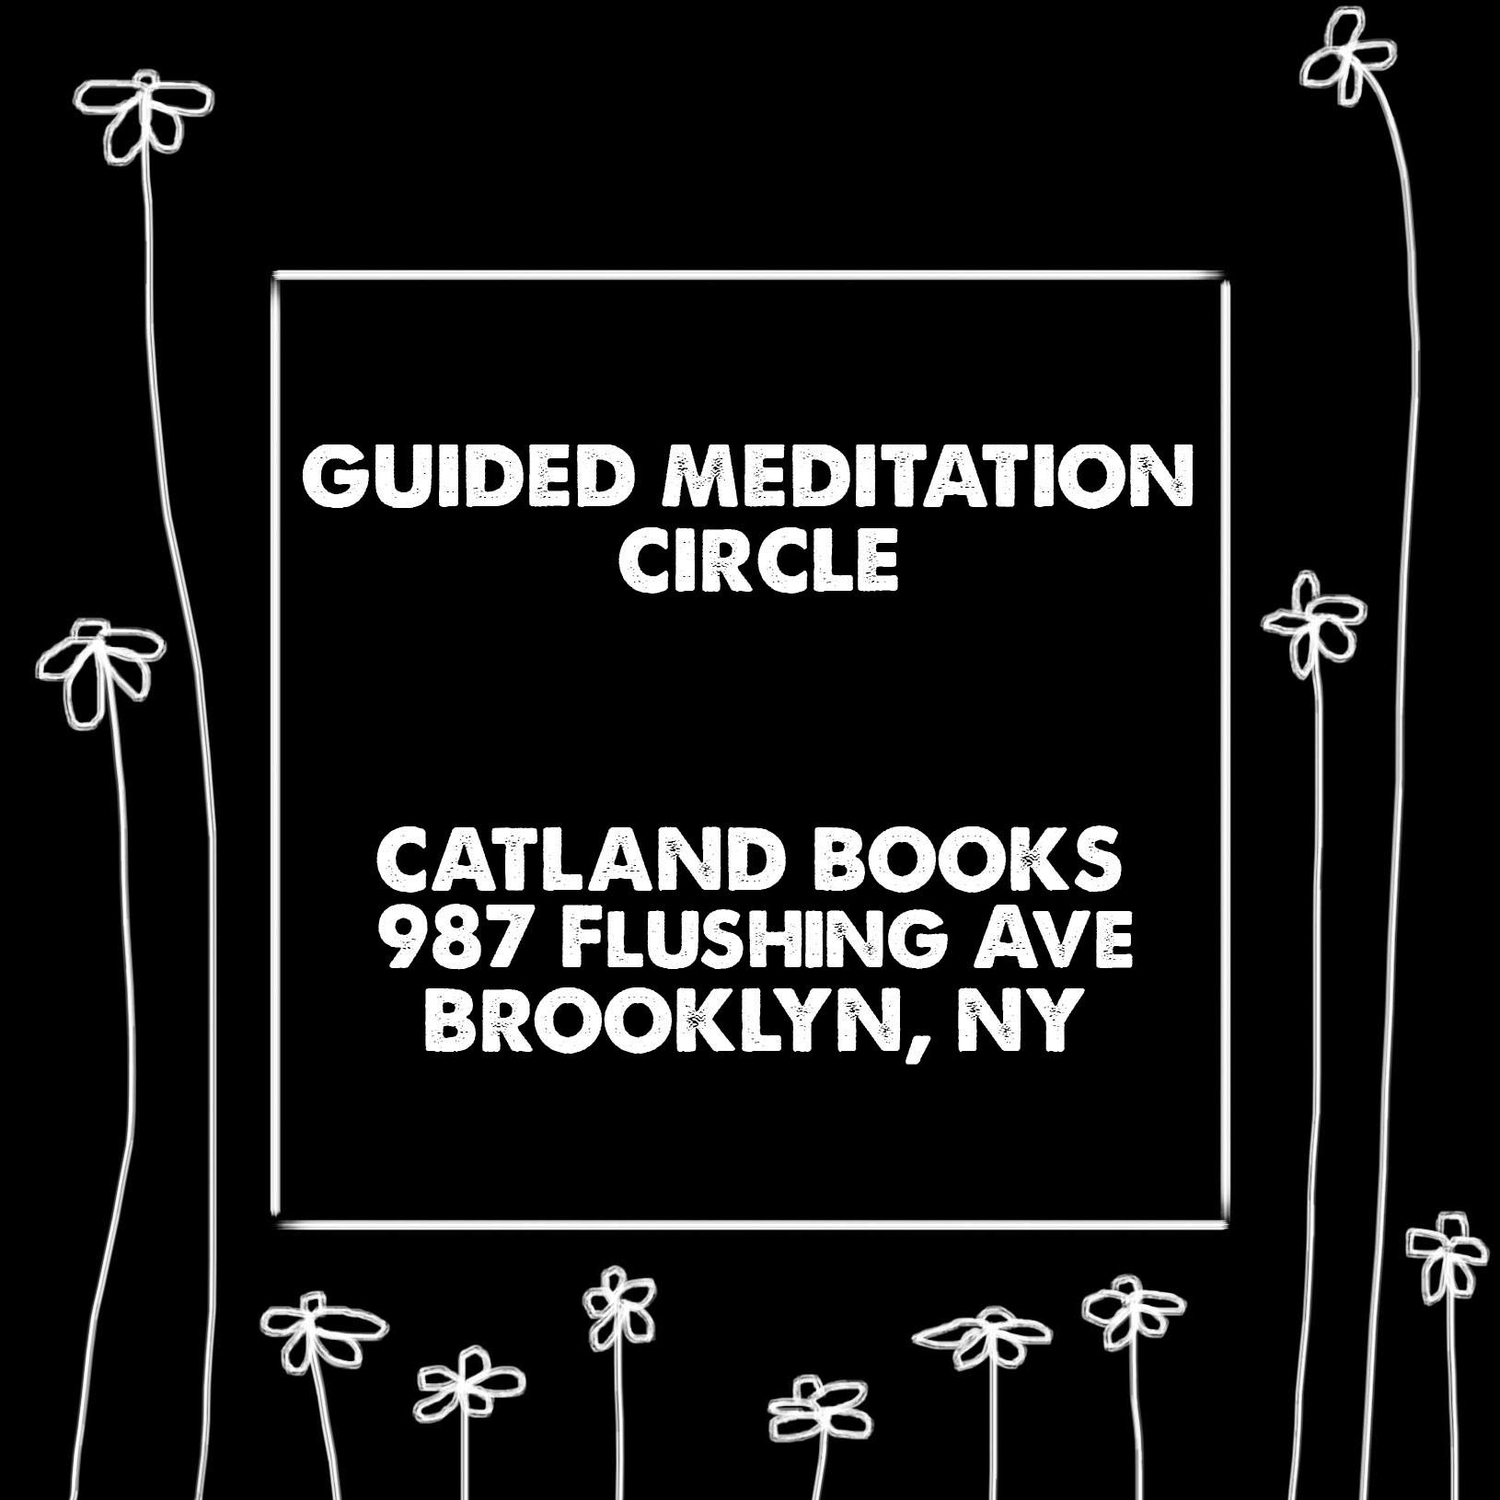 Guided Meditation Circle — Catland